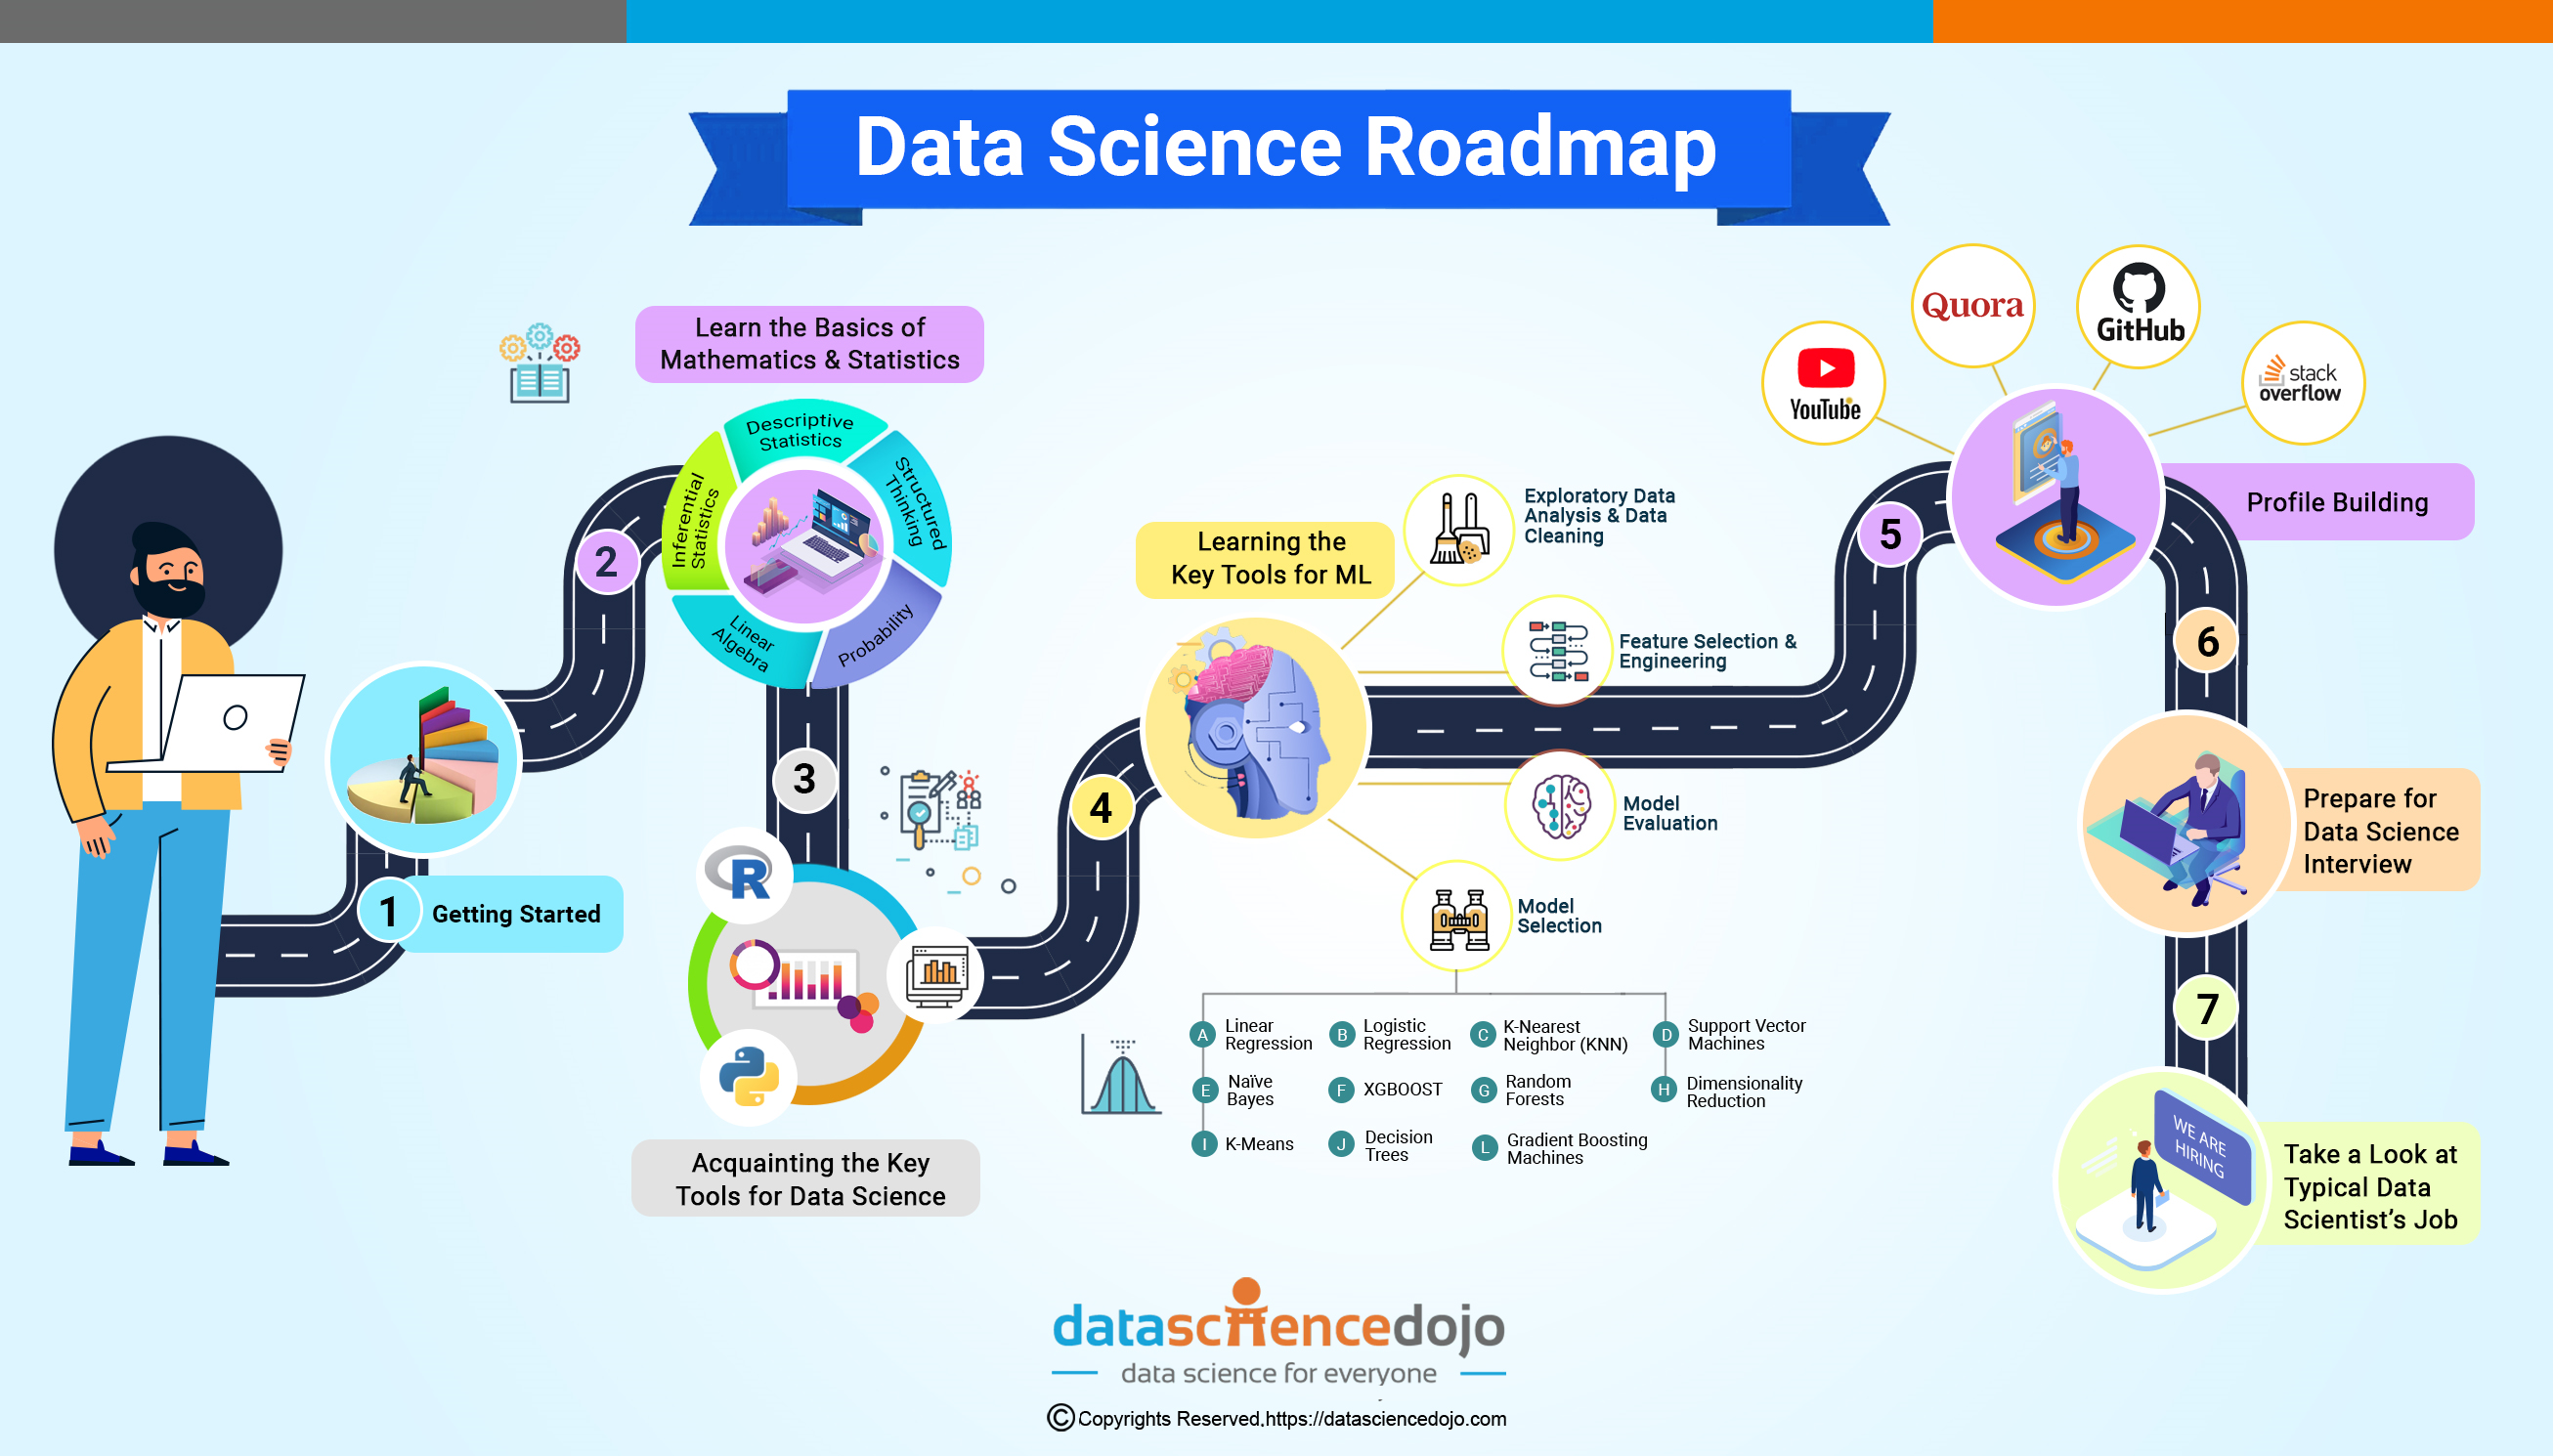 Image showing a standard roadmap for data scientists, including valuable resources.